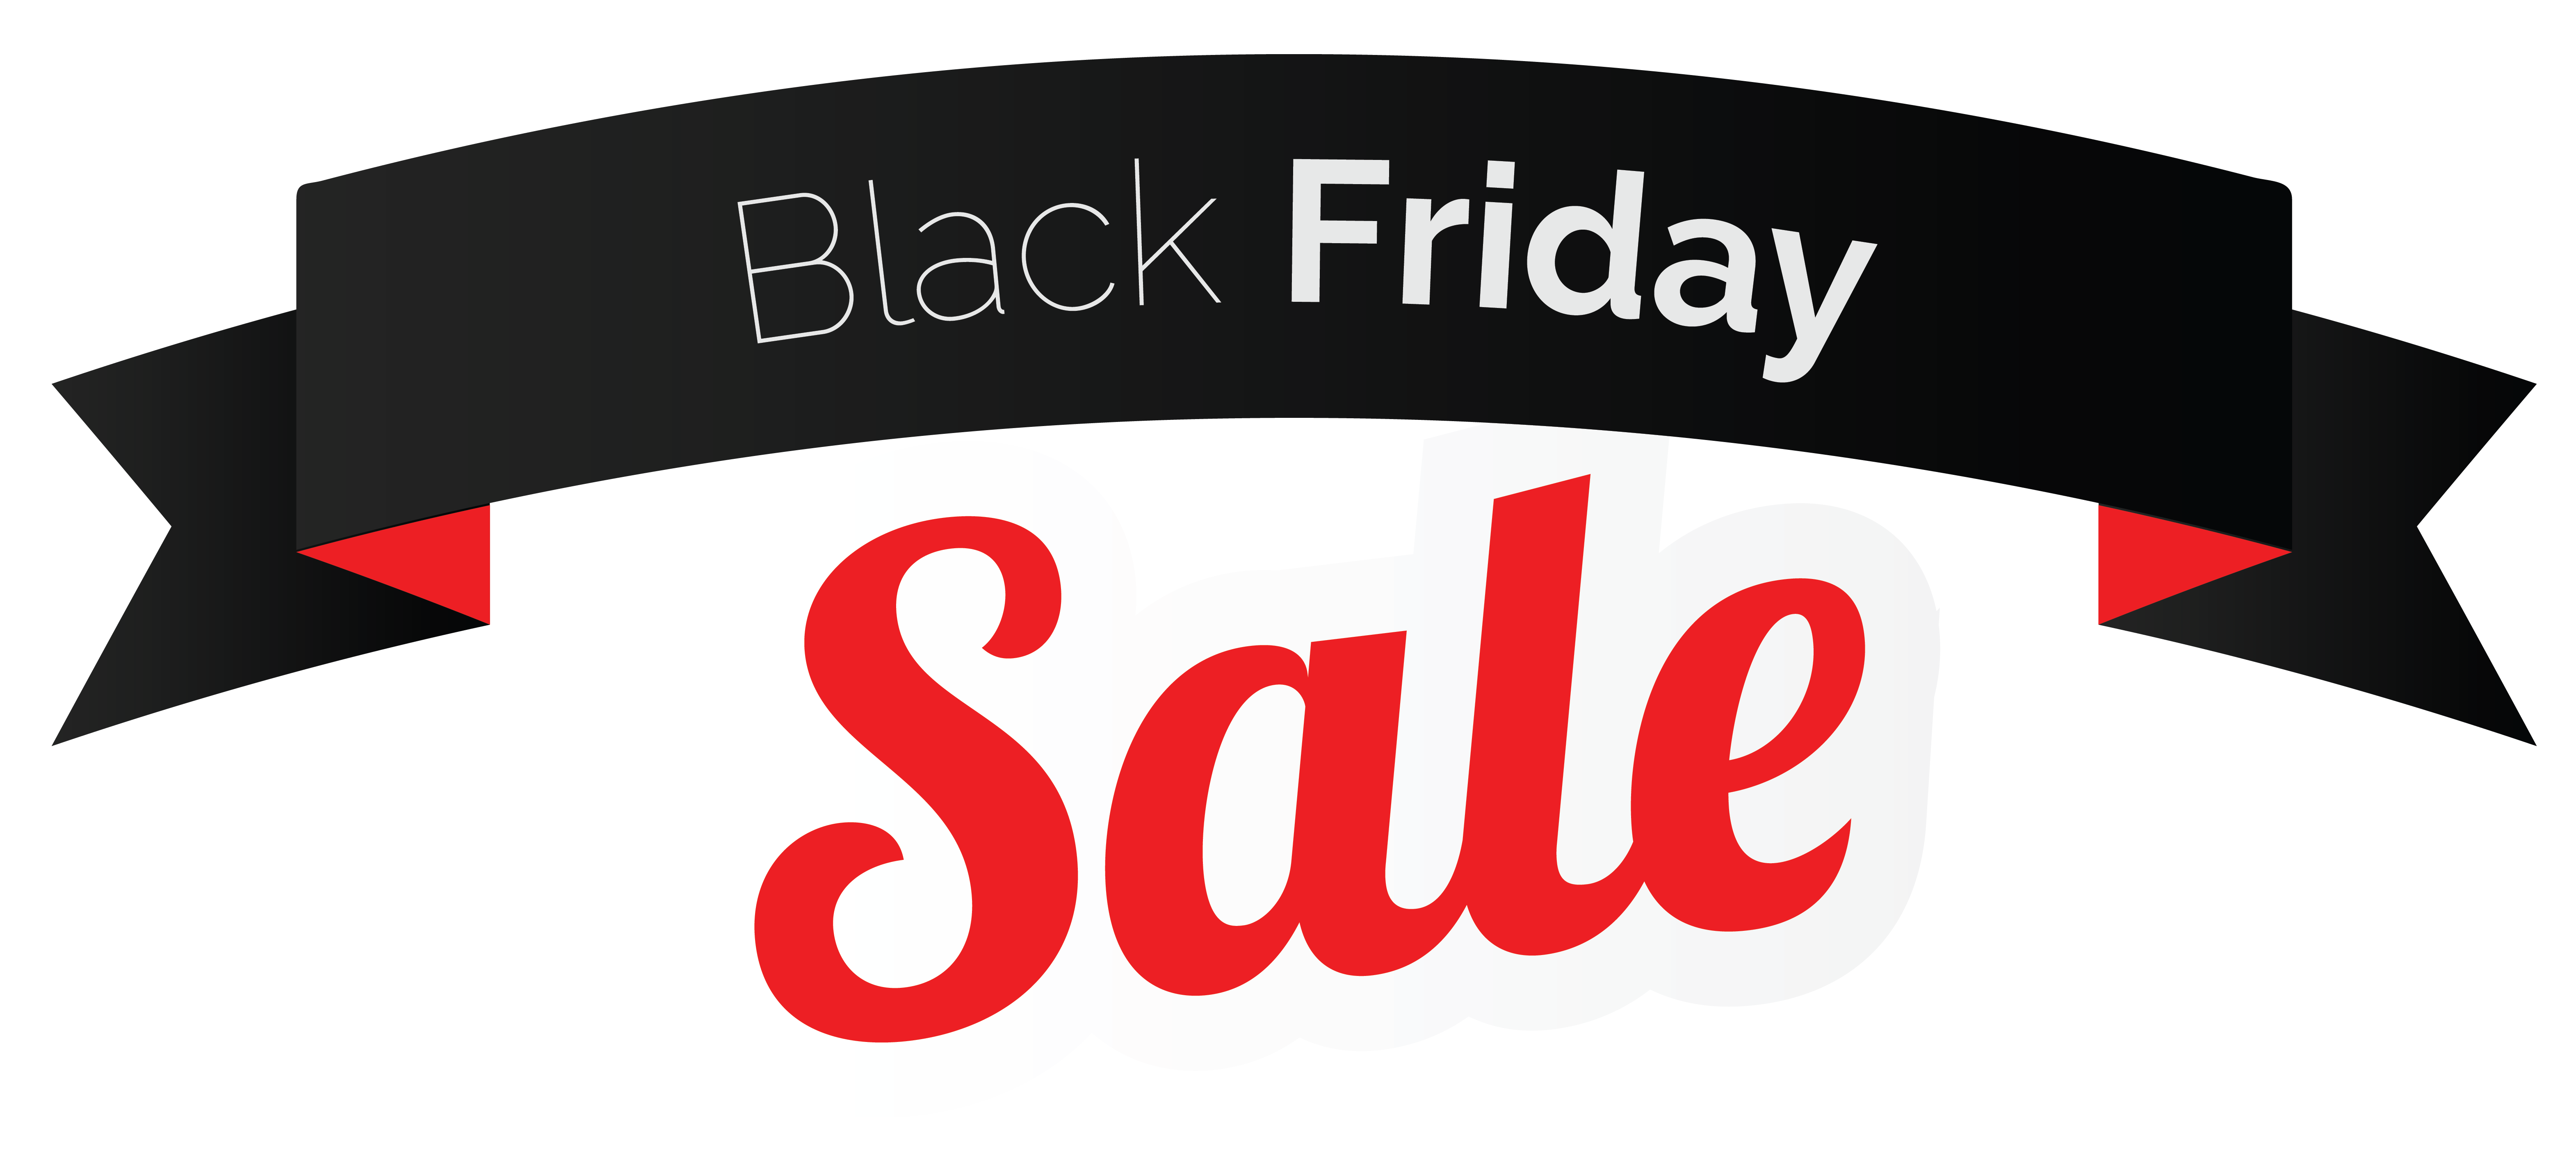 Black friday clipart image svg transparent 14 cliparts for free. Download Friday clipart and use in ... svg transparent